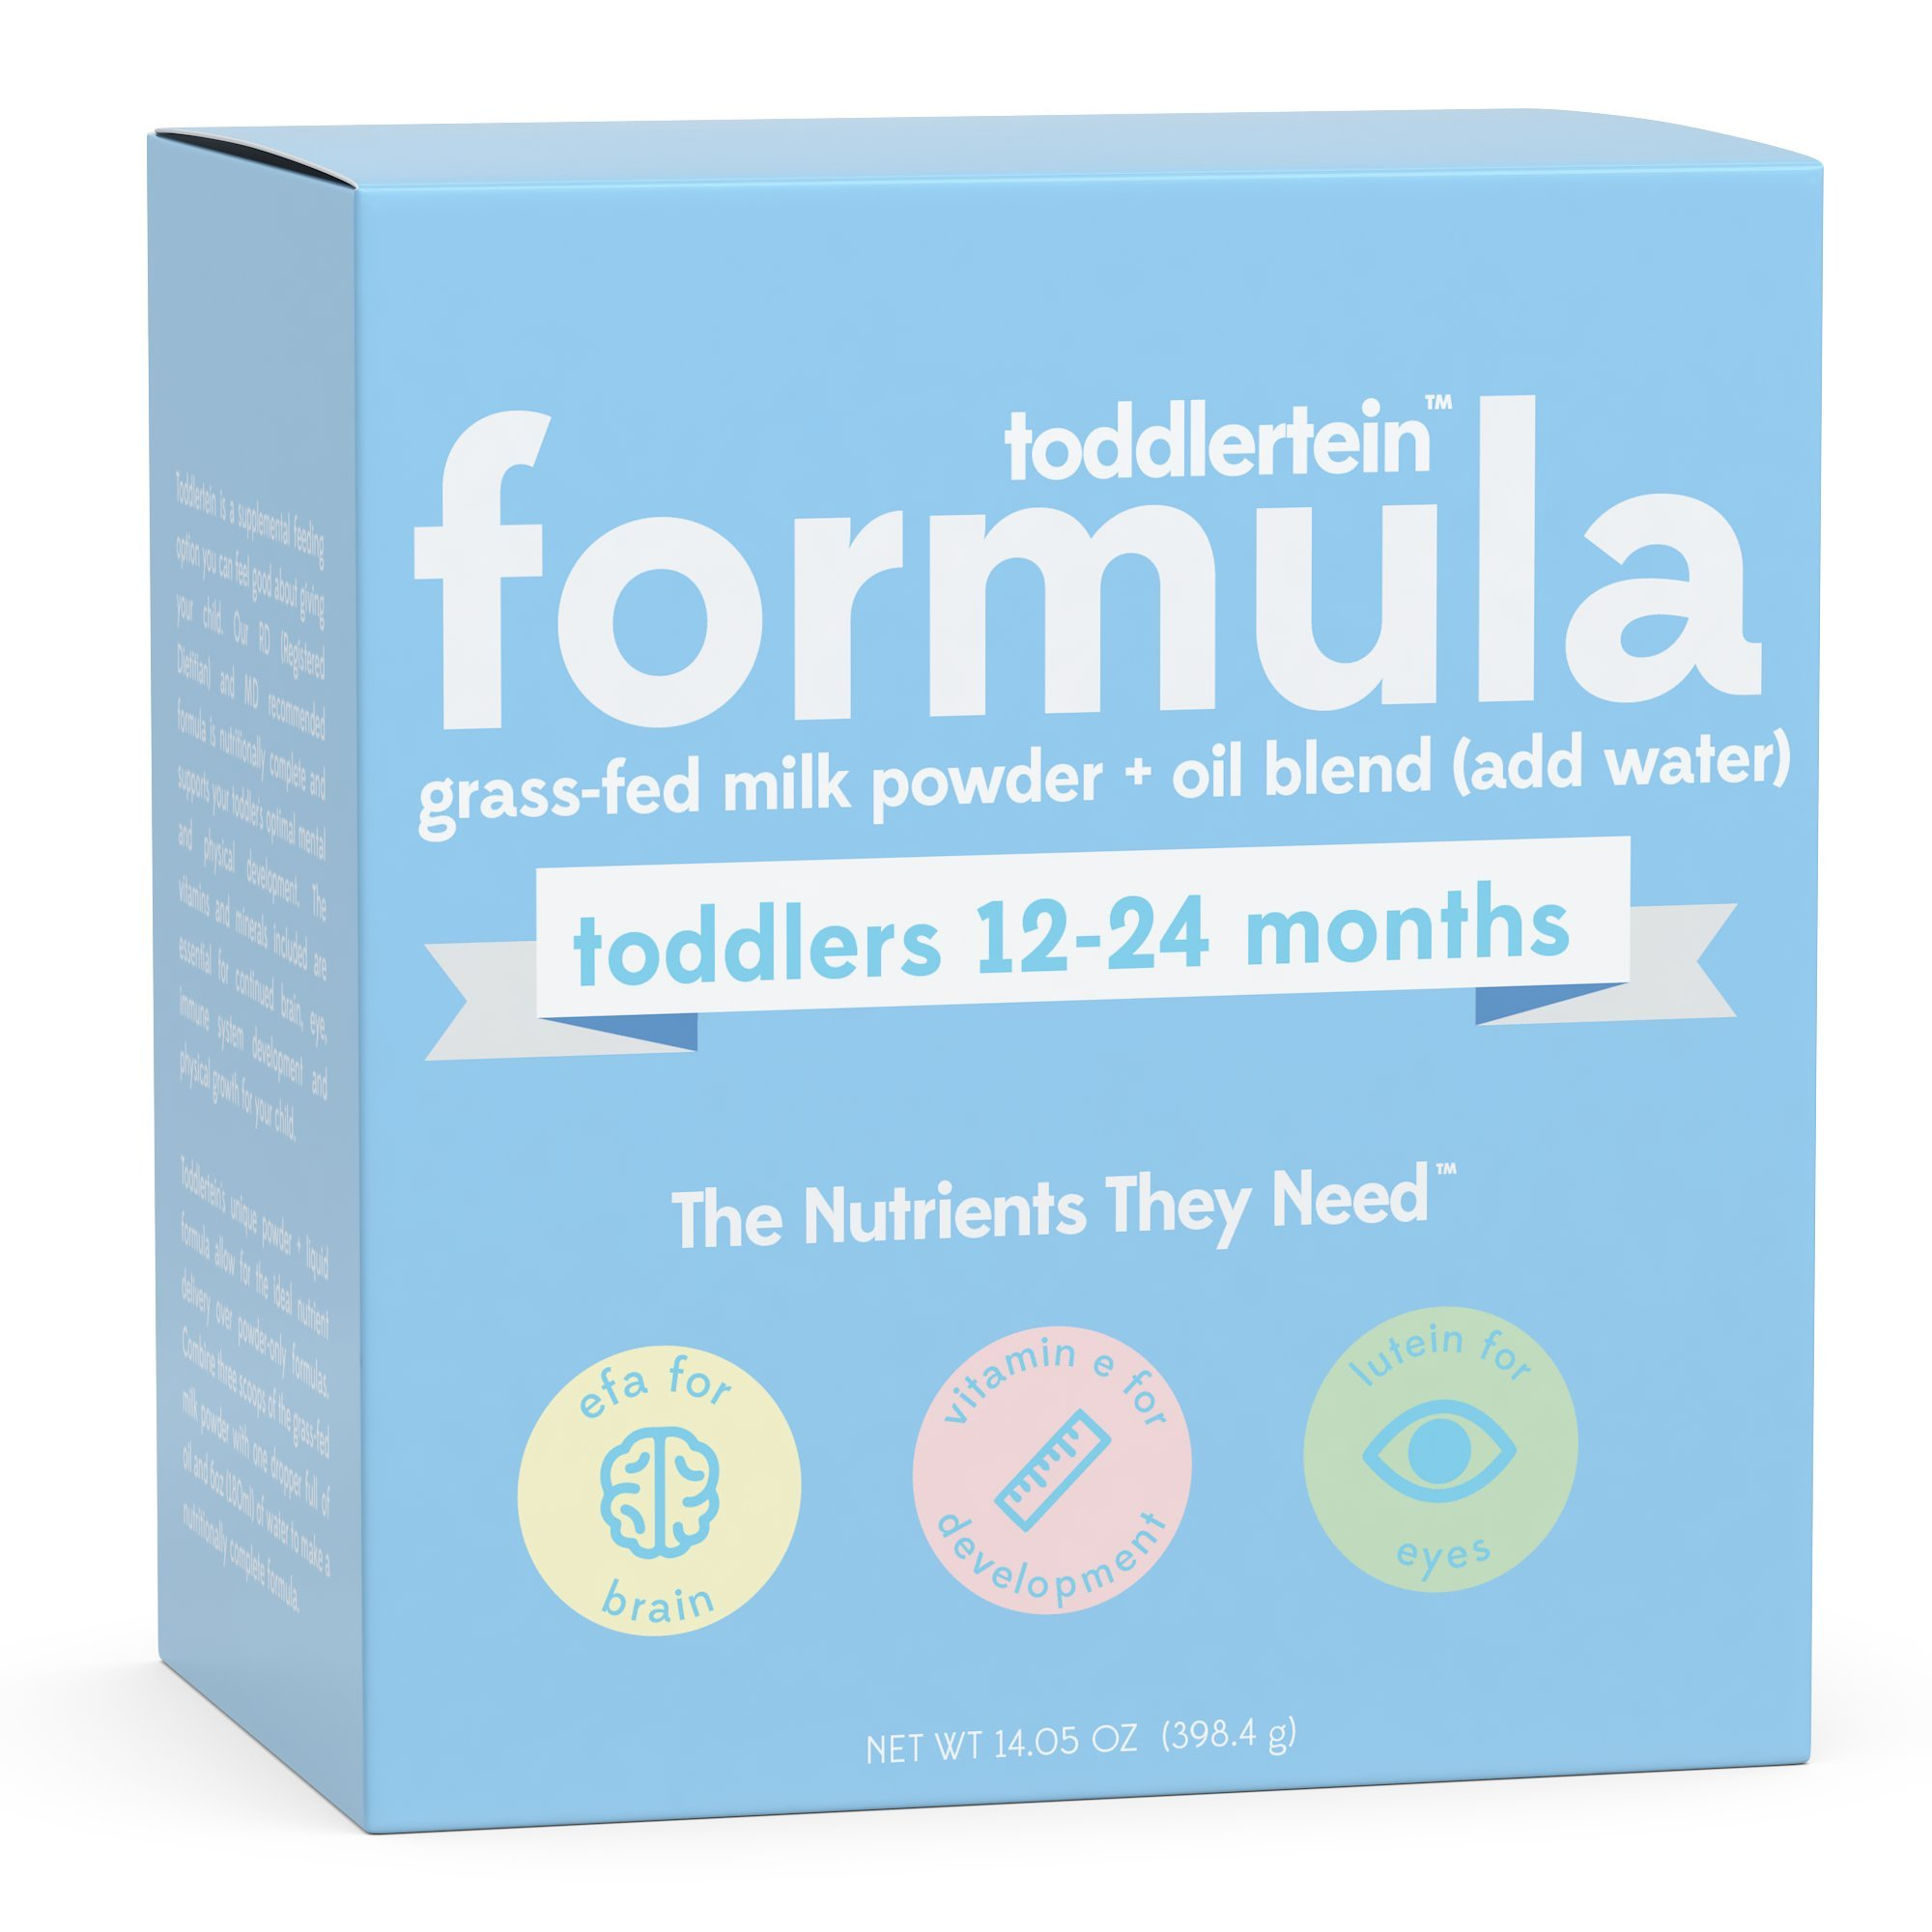 Toddlertein: The First Grass-fed Milk Toddler Formula that is 100% Soy-free, Hormone-free & Non-GMO. Complete 25 Vitamins and Minerals. Gluten free. No Added Sugar. >1 year